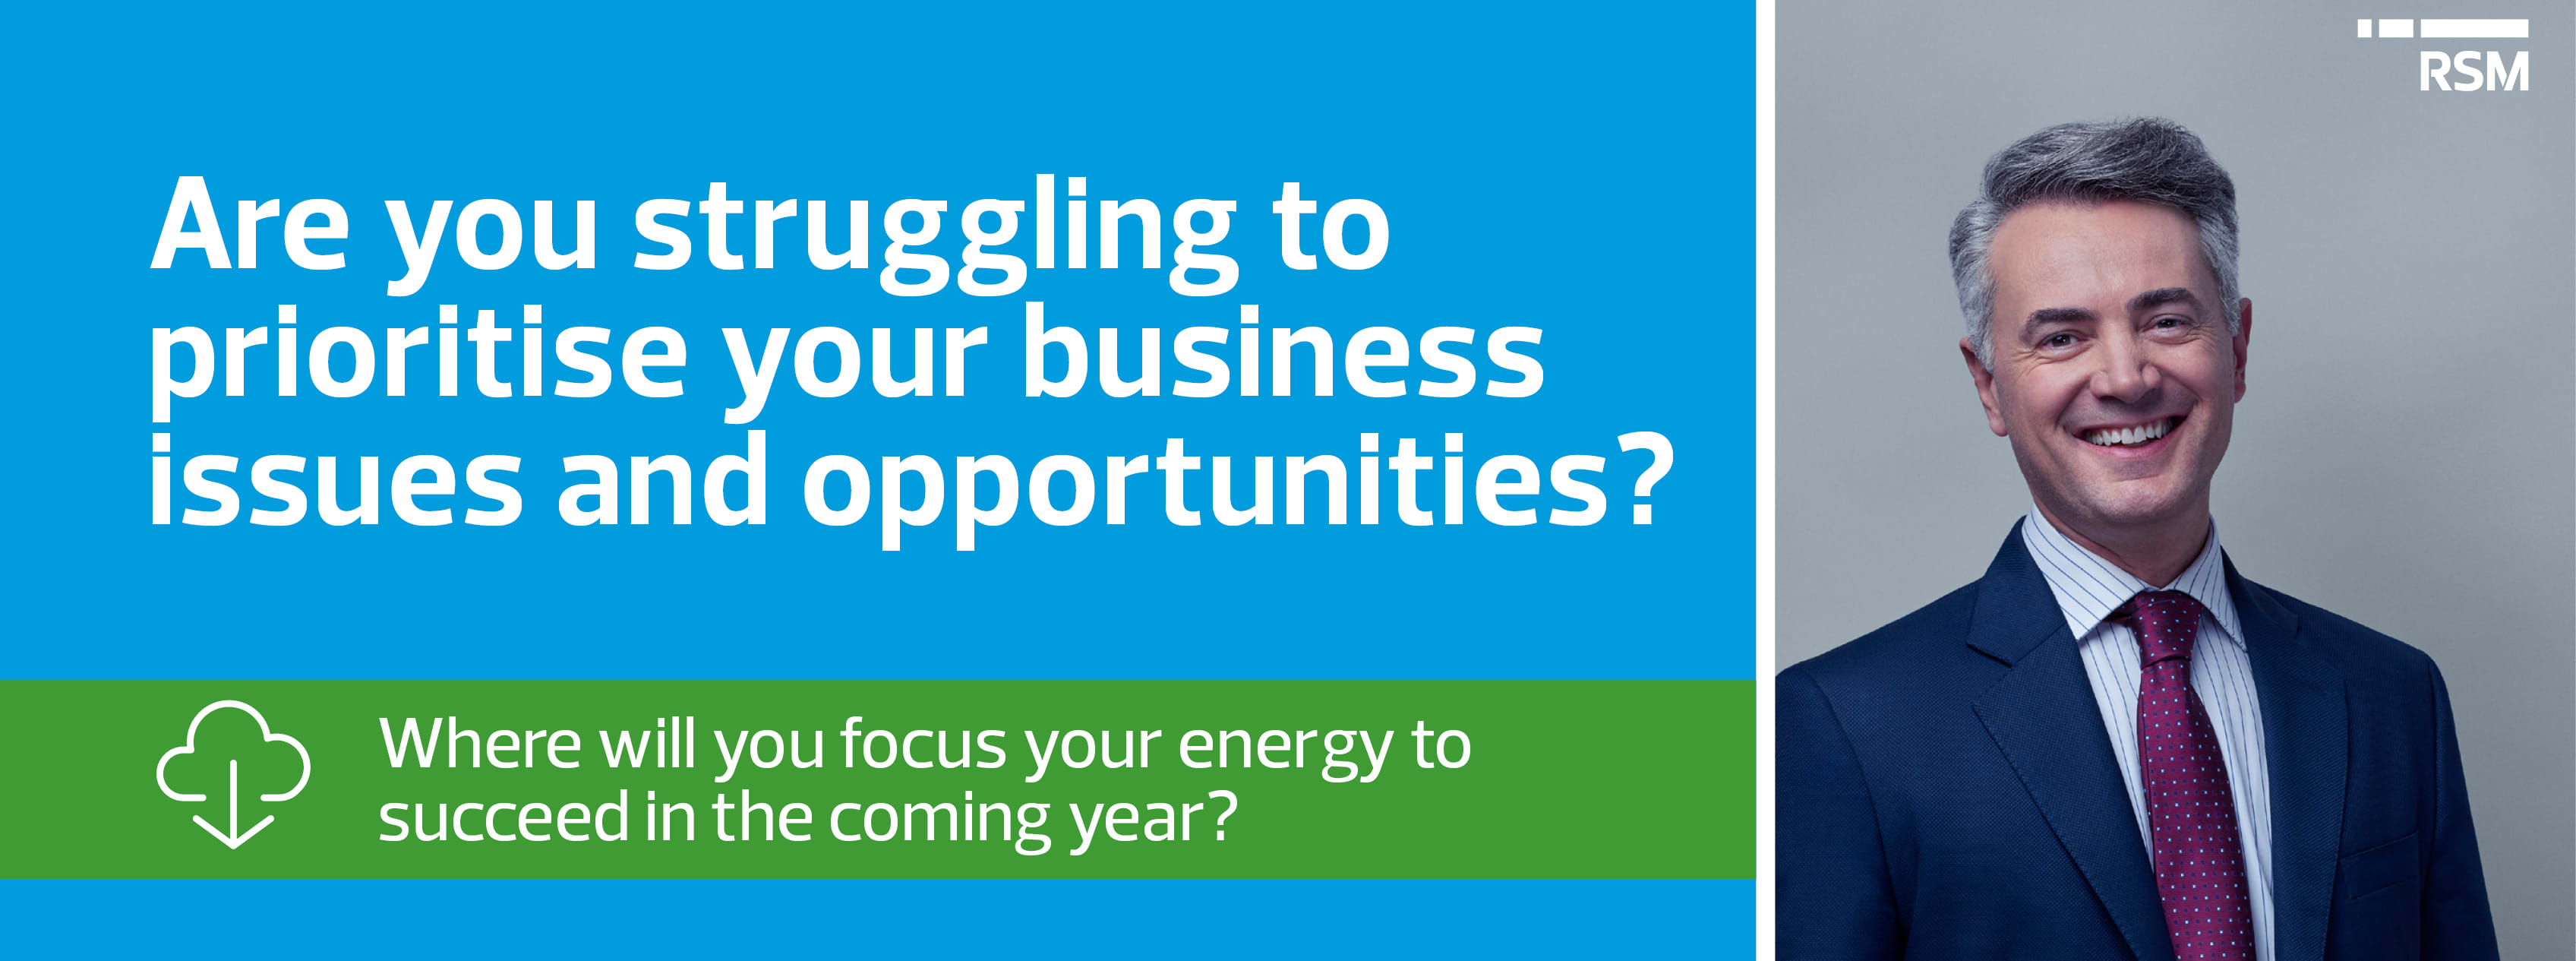 Are you struggling to prioritise your business issues and opportunities